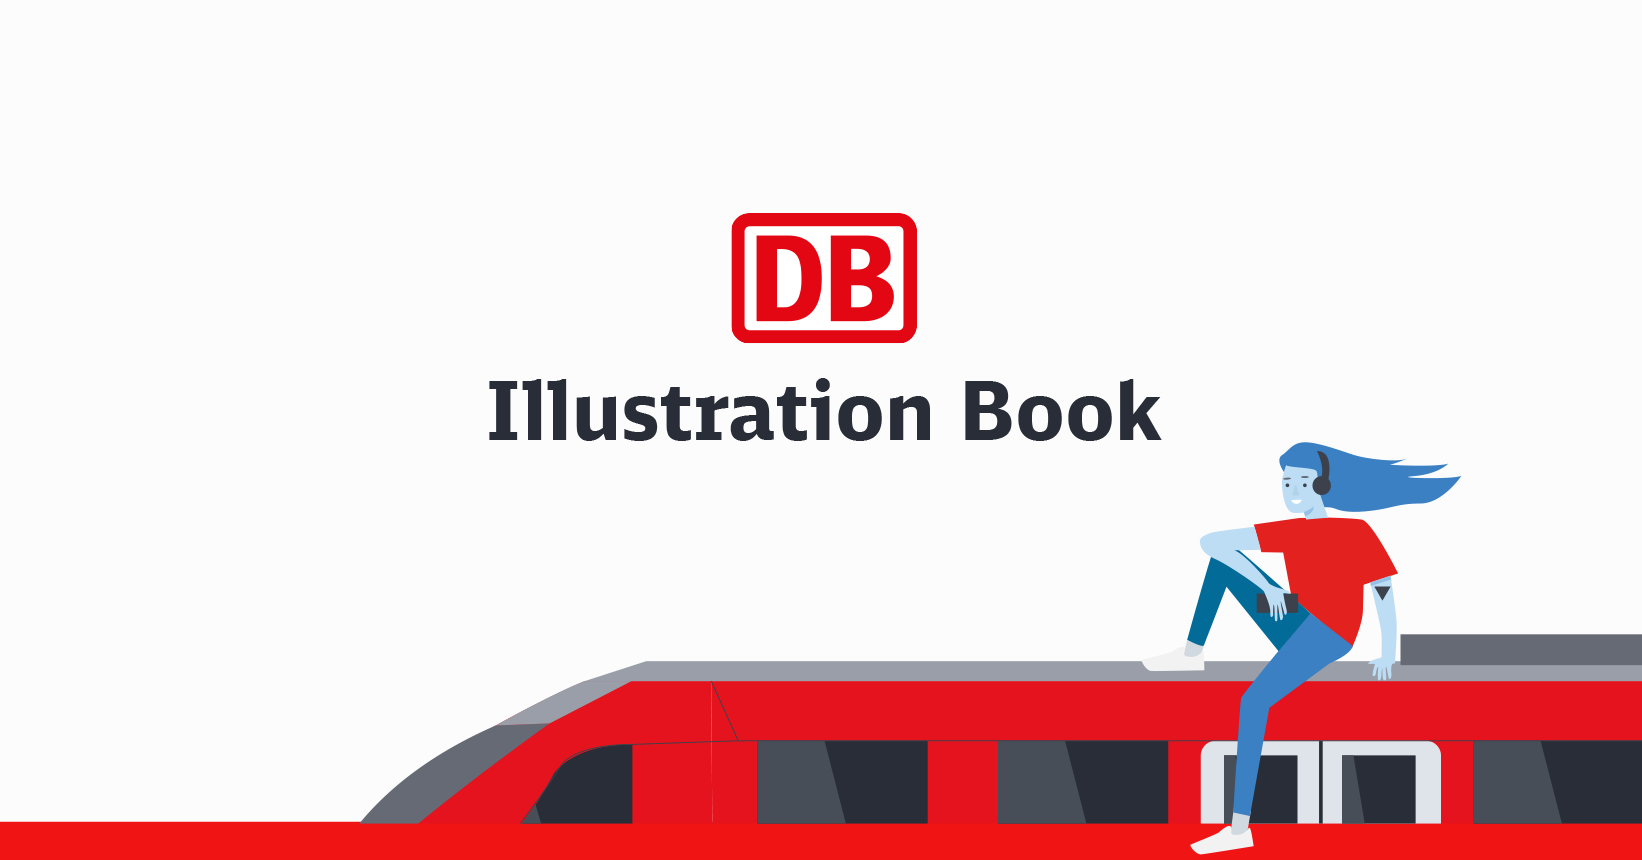 Deutsche Bahn / Illustration